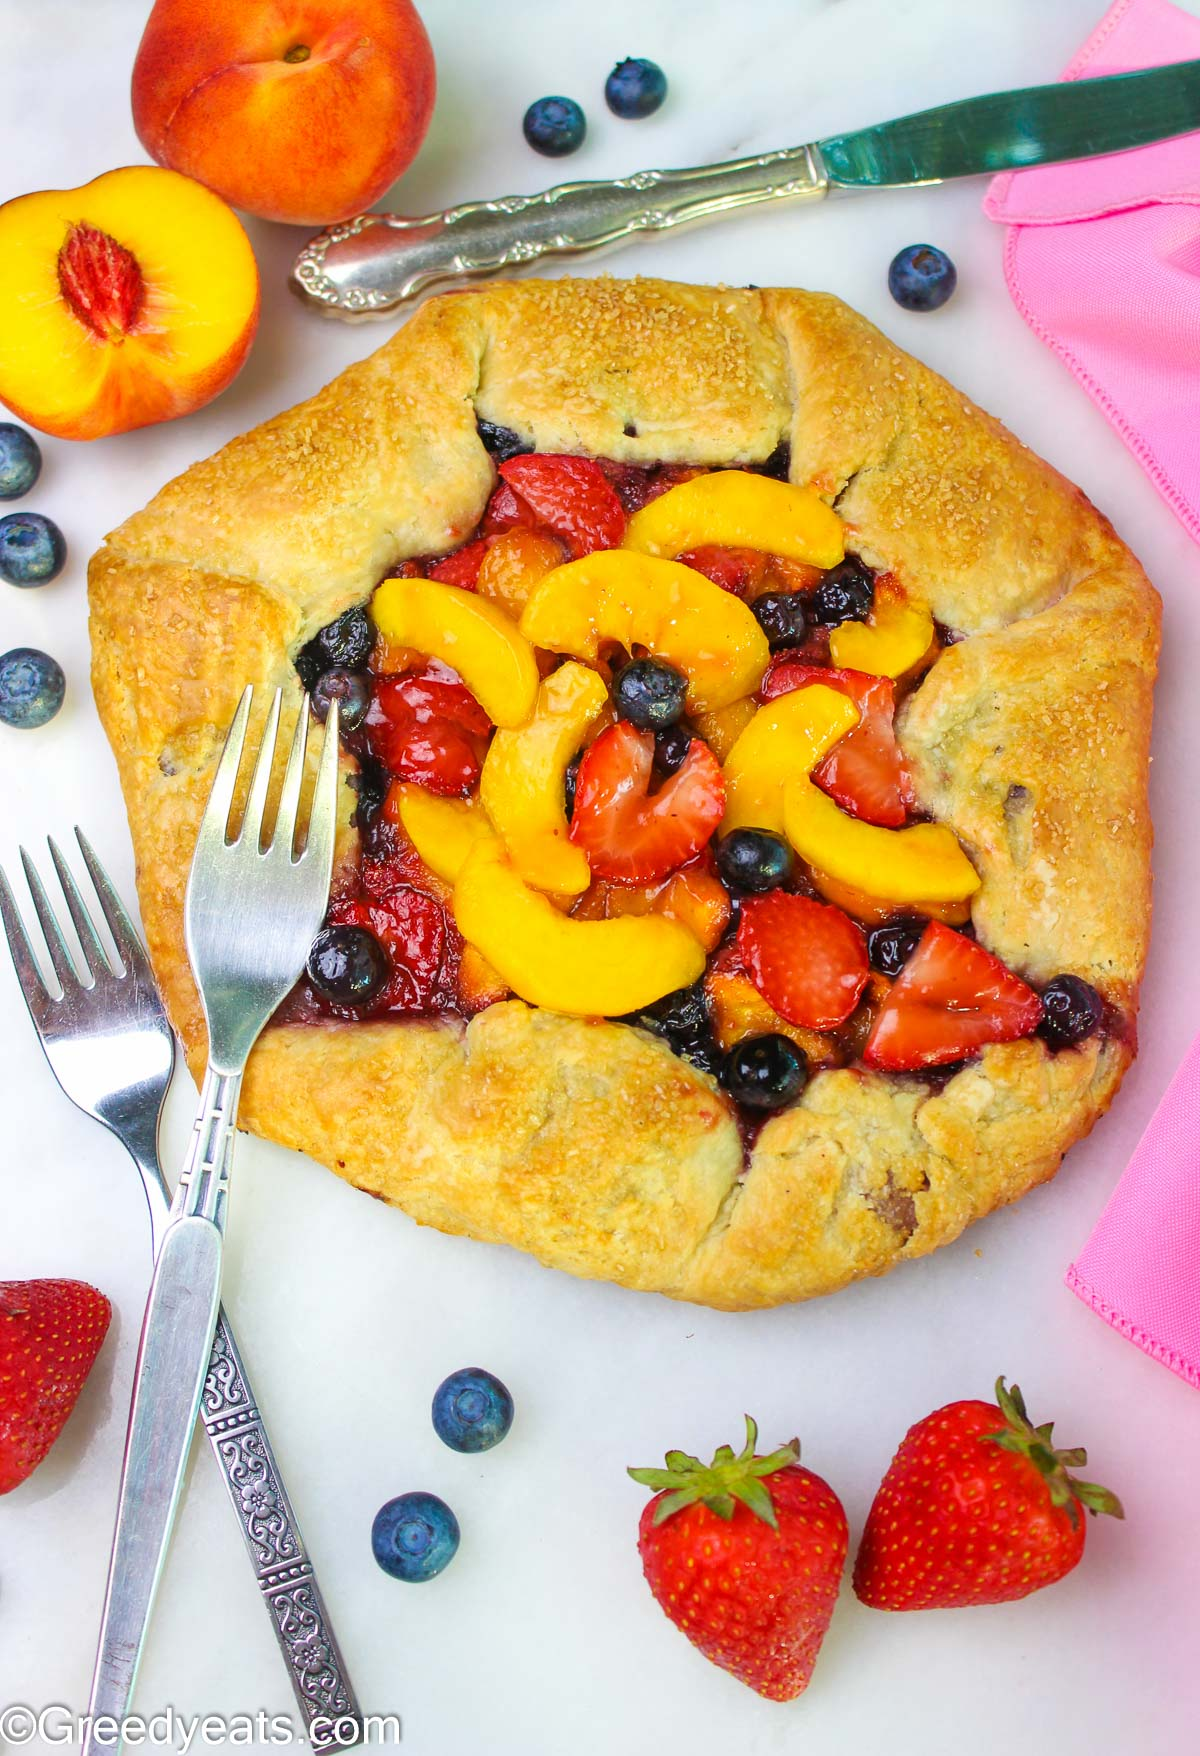 Homemade berry peach Galette is a perfect summer dessert with sweet fruit filling.